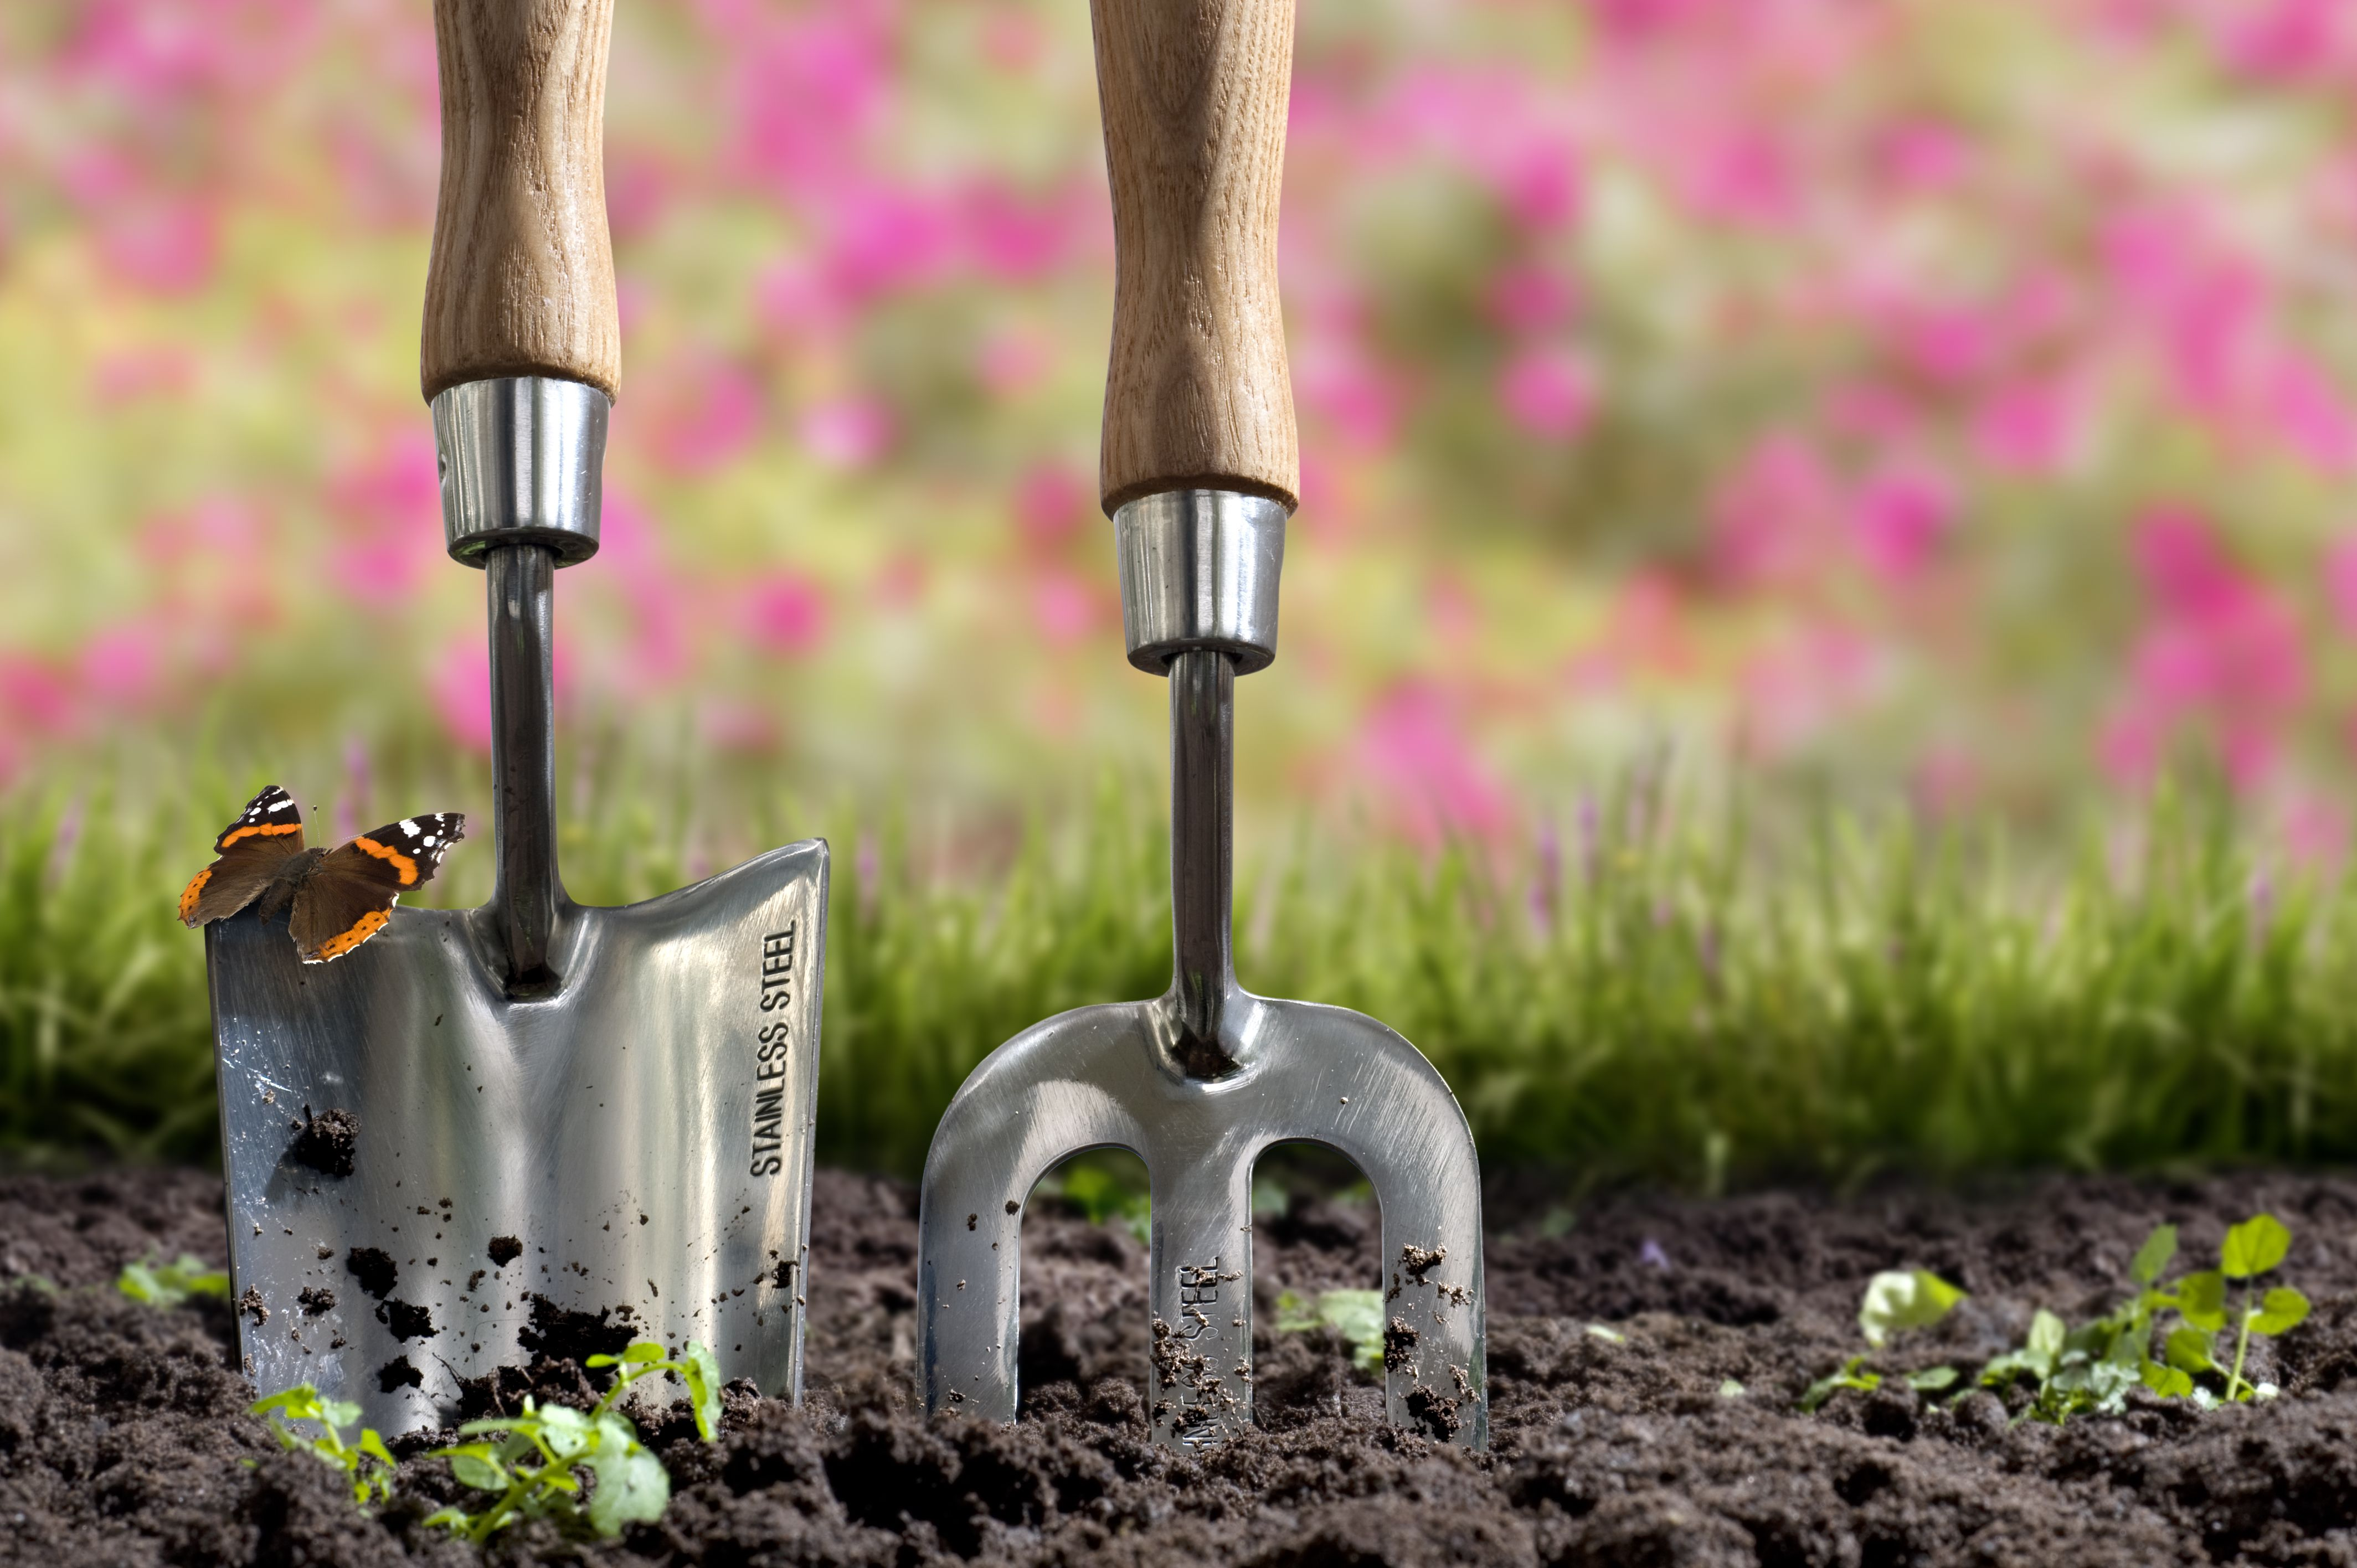 15 Easy Gardening Projects to Kick Off Spring